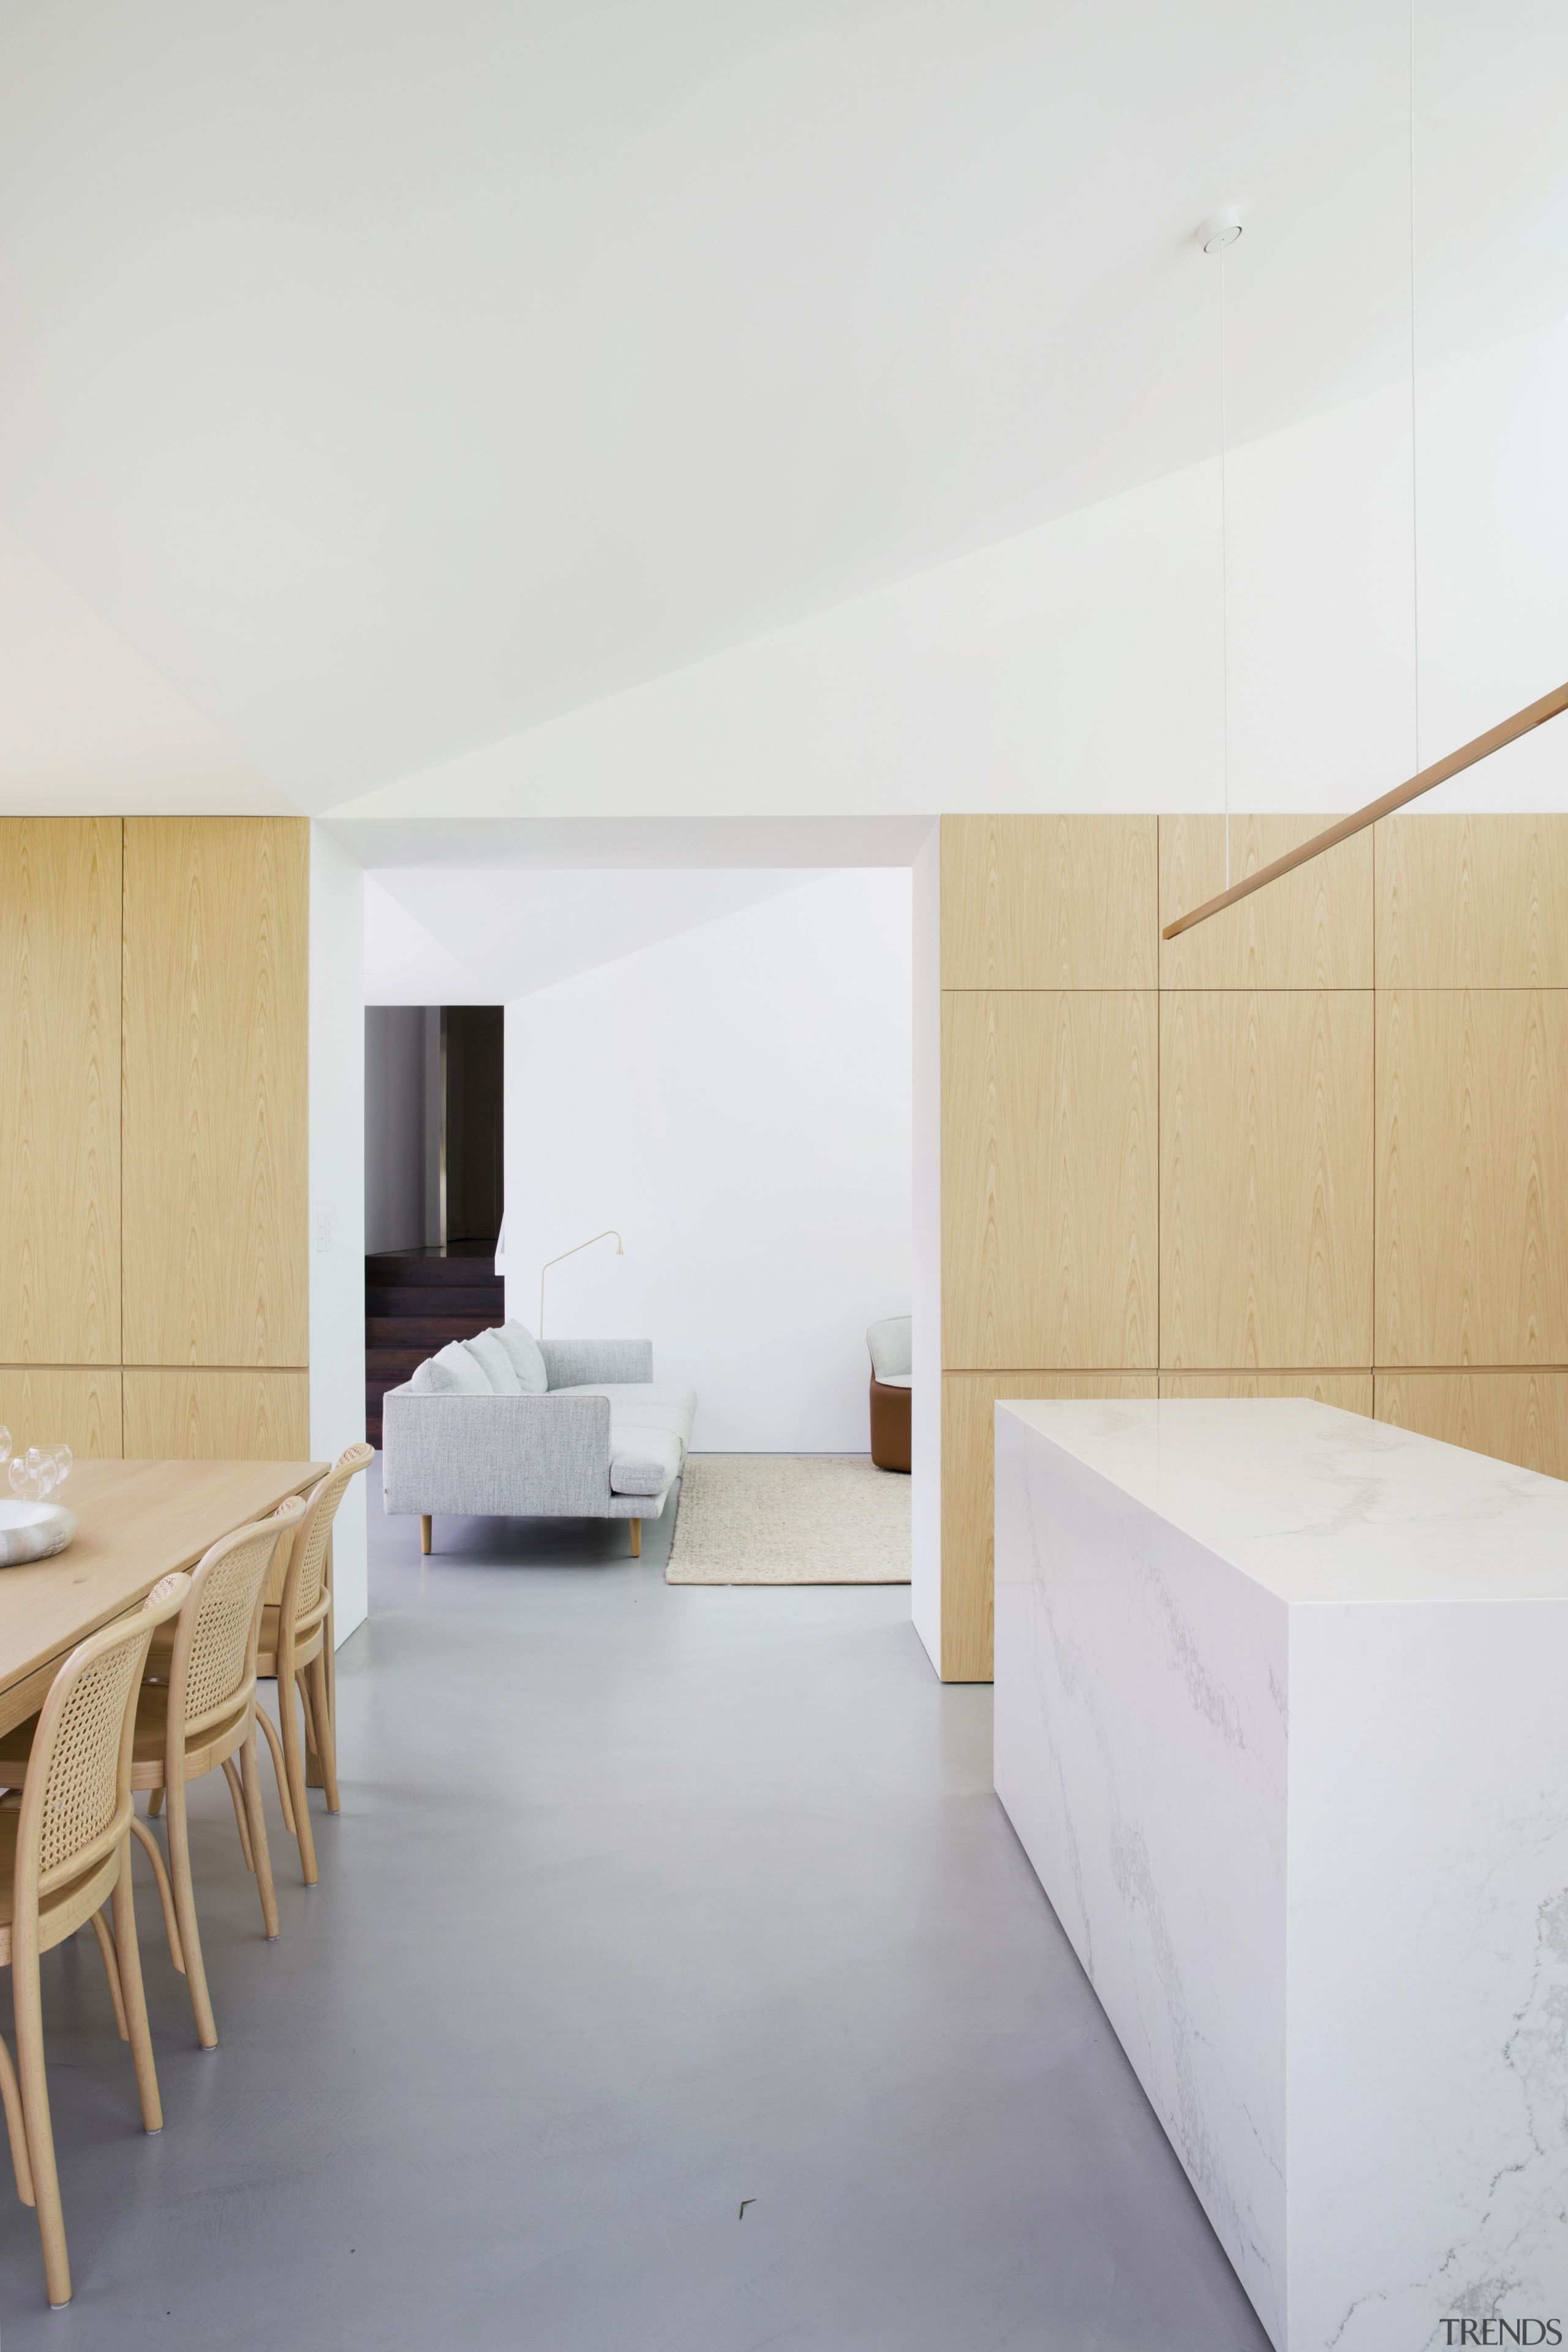 A contemporary linear brass pendant over the kitchen home, architecture, , floor, house, interior design, table, wall, wood, white, kitchen, Studio Prineas